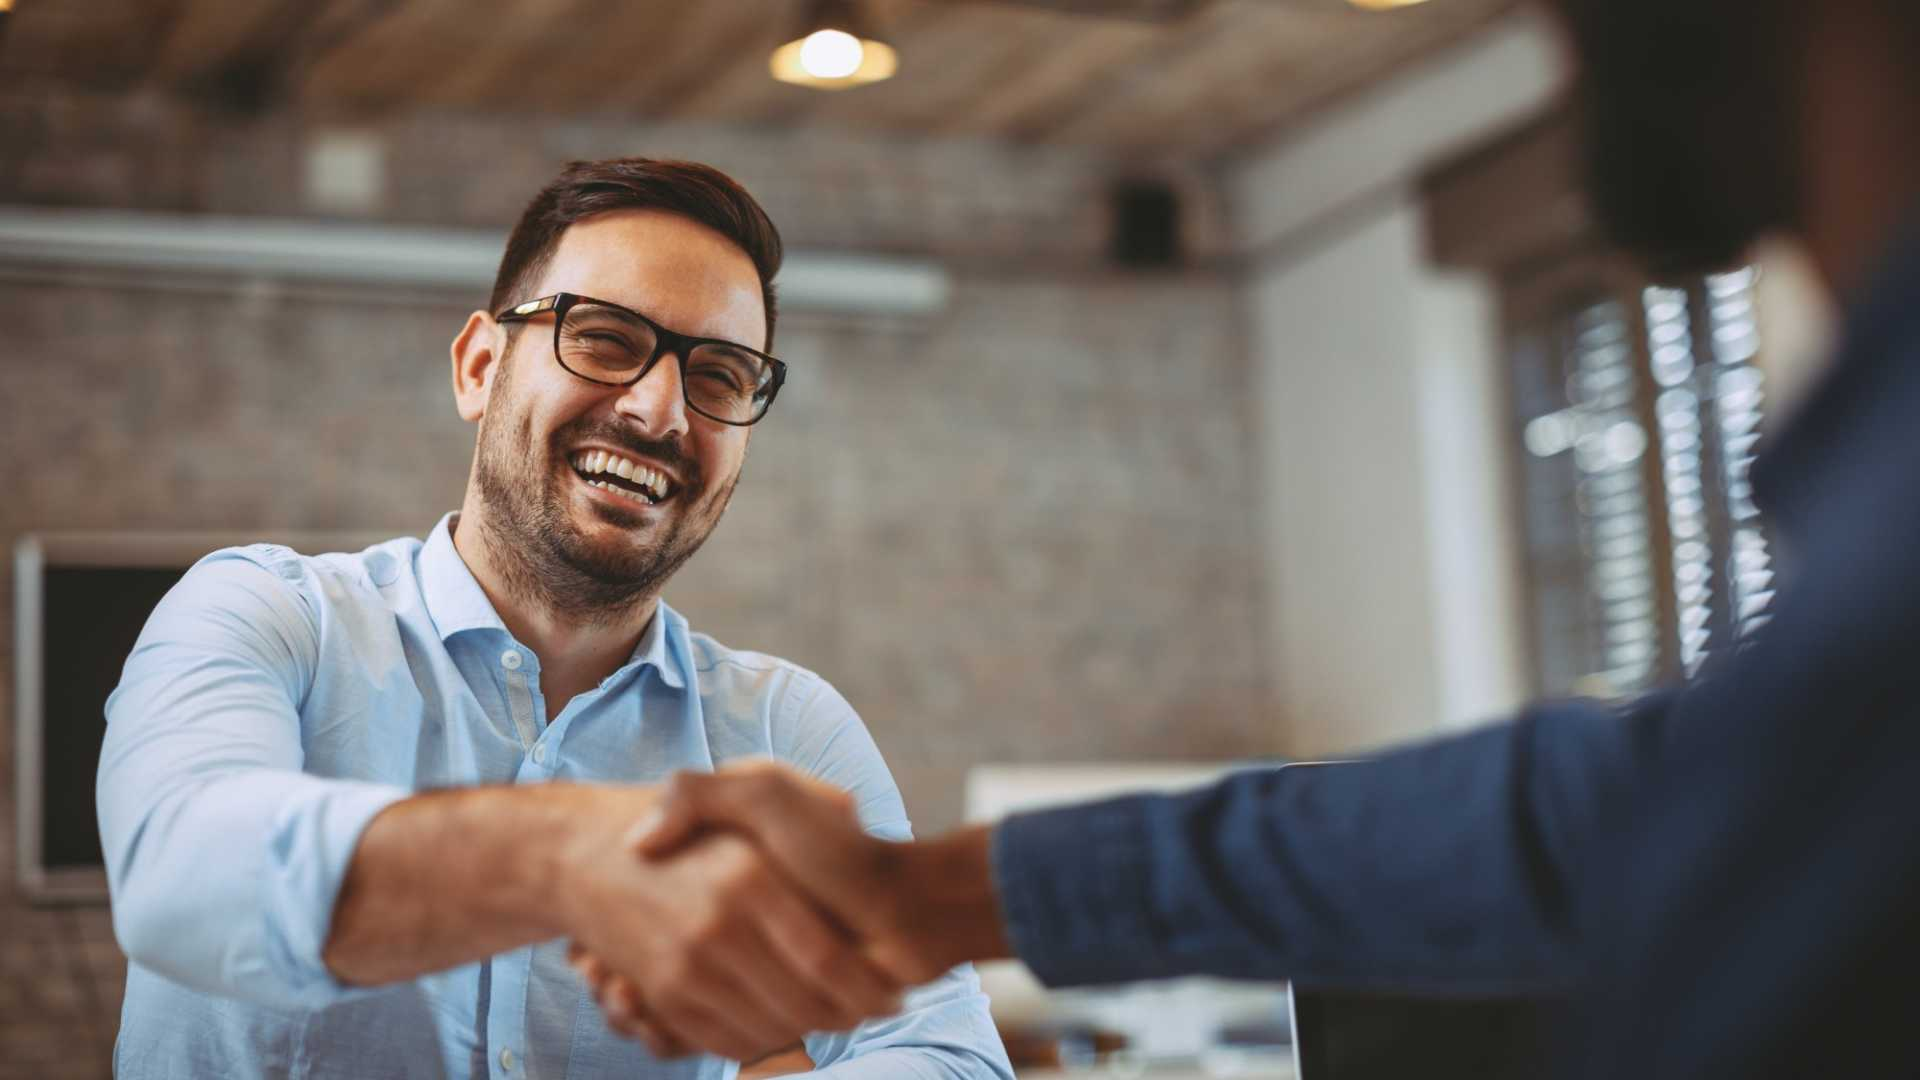 How to Be Confident (Not Arrogant) and Win Over New Clients